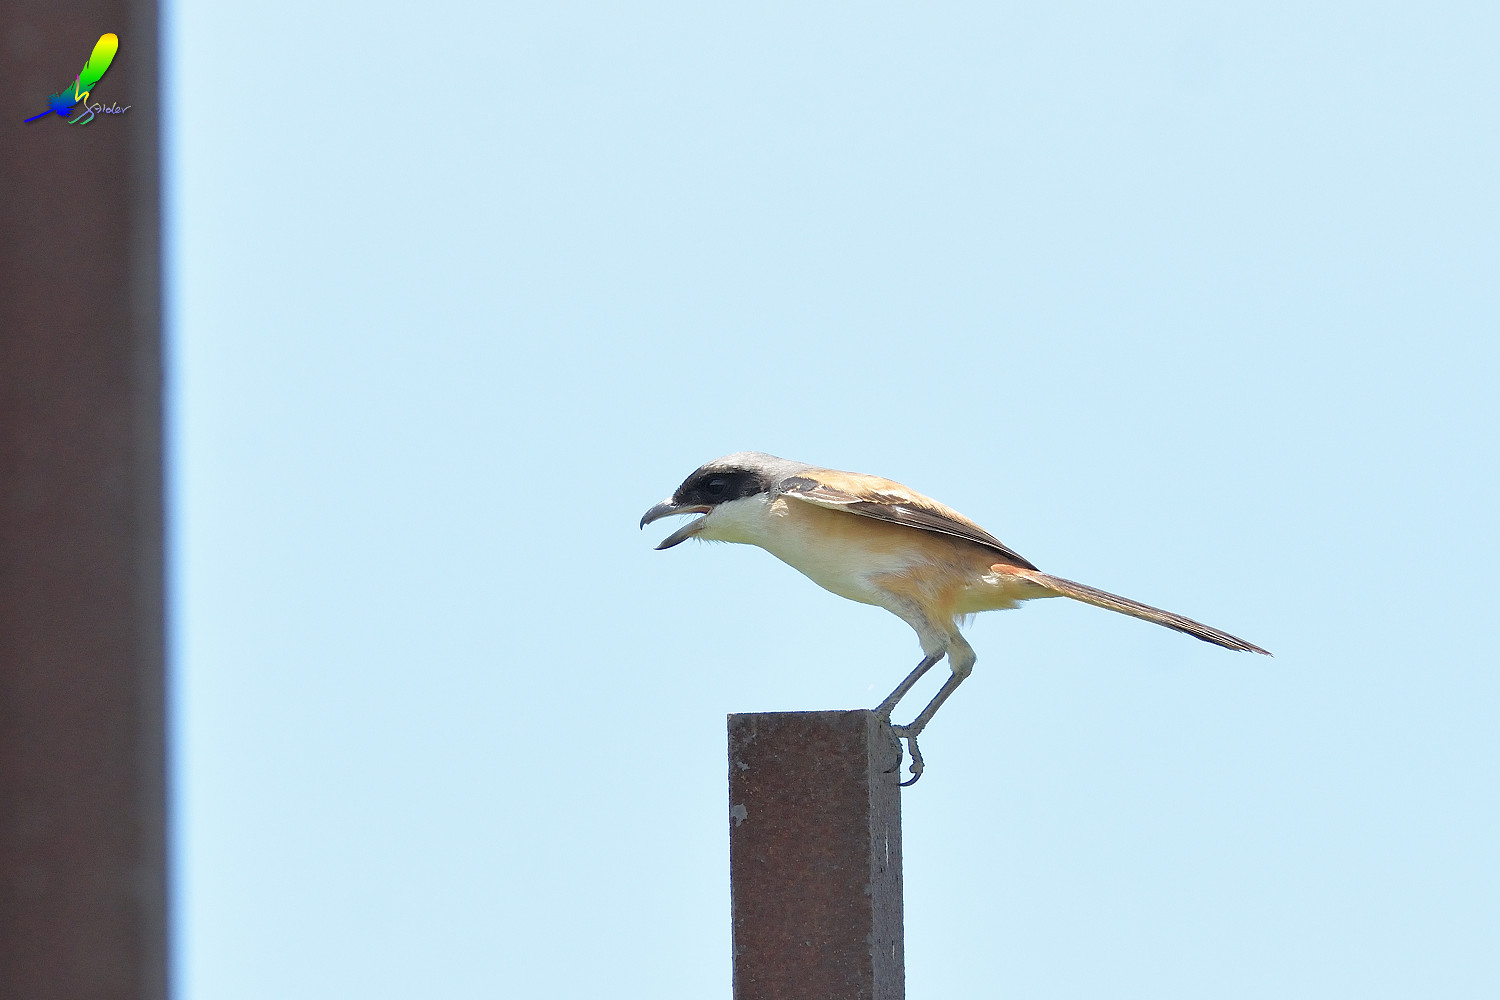 Long-tailed_Shrike_8414